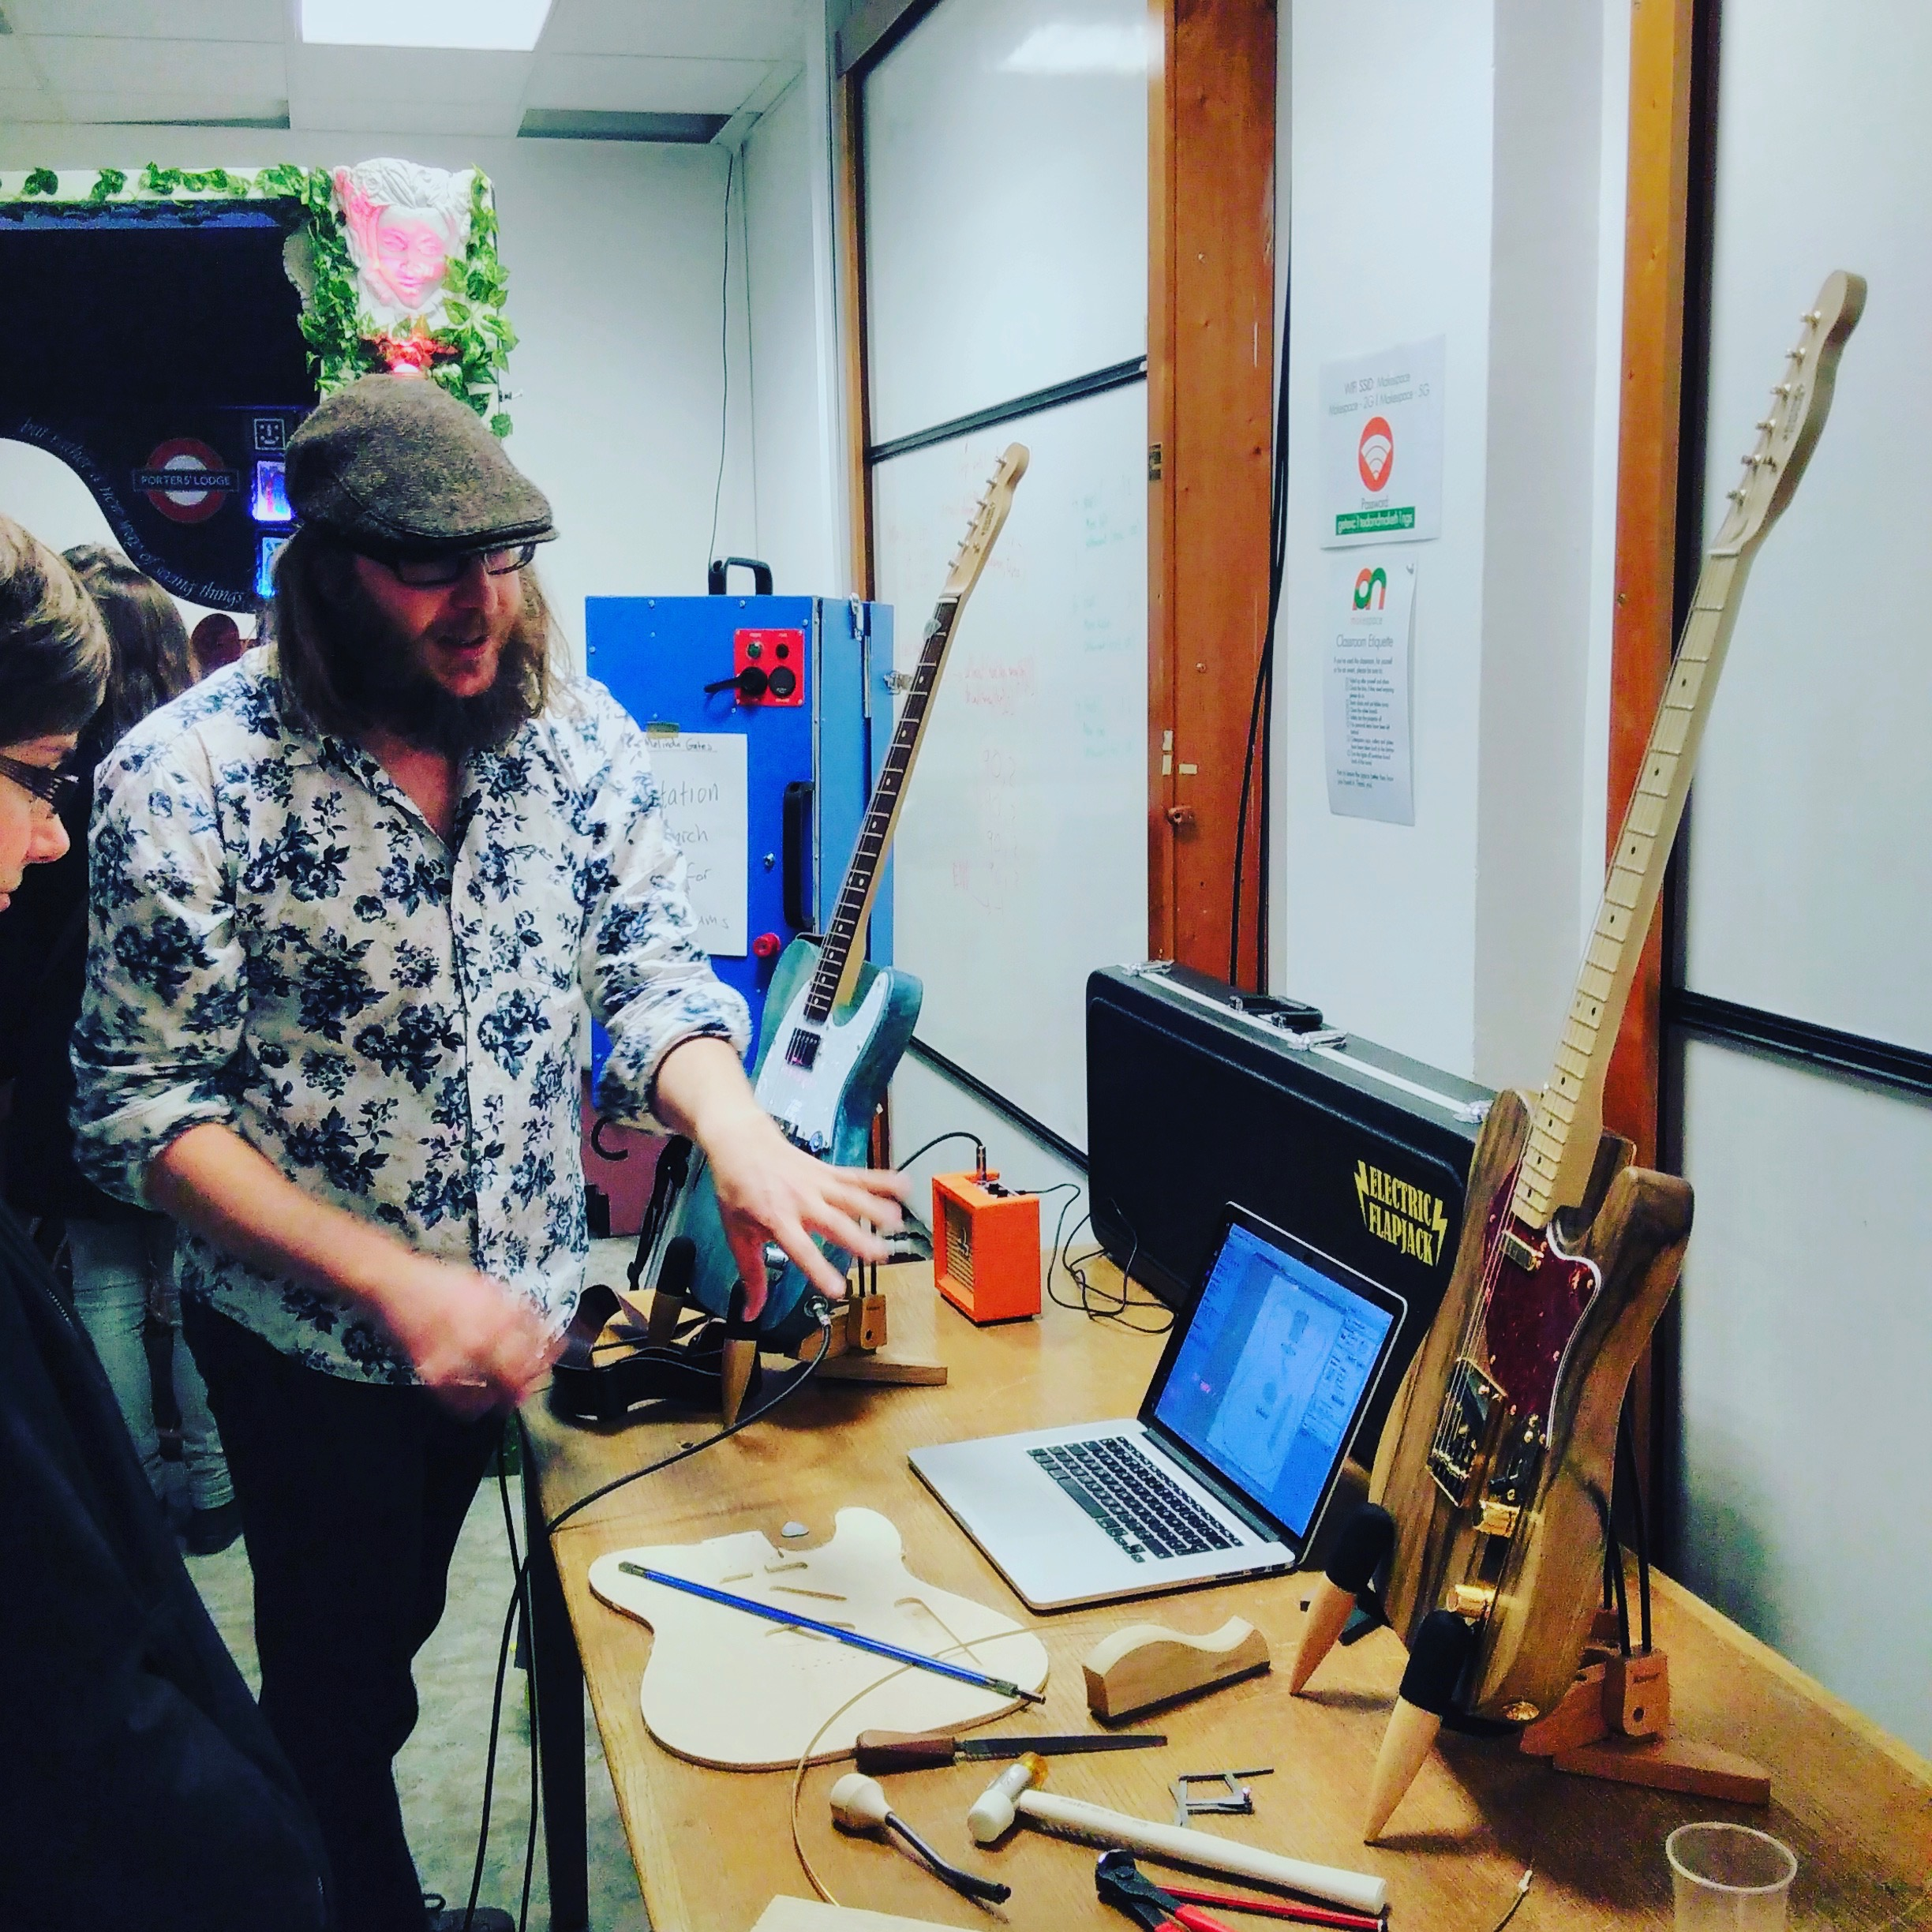 Me doing some demos at the last Makespace show and tell night in early 2017